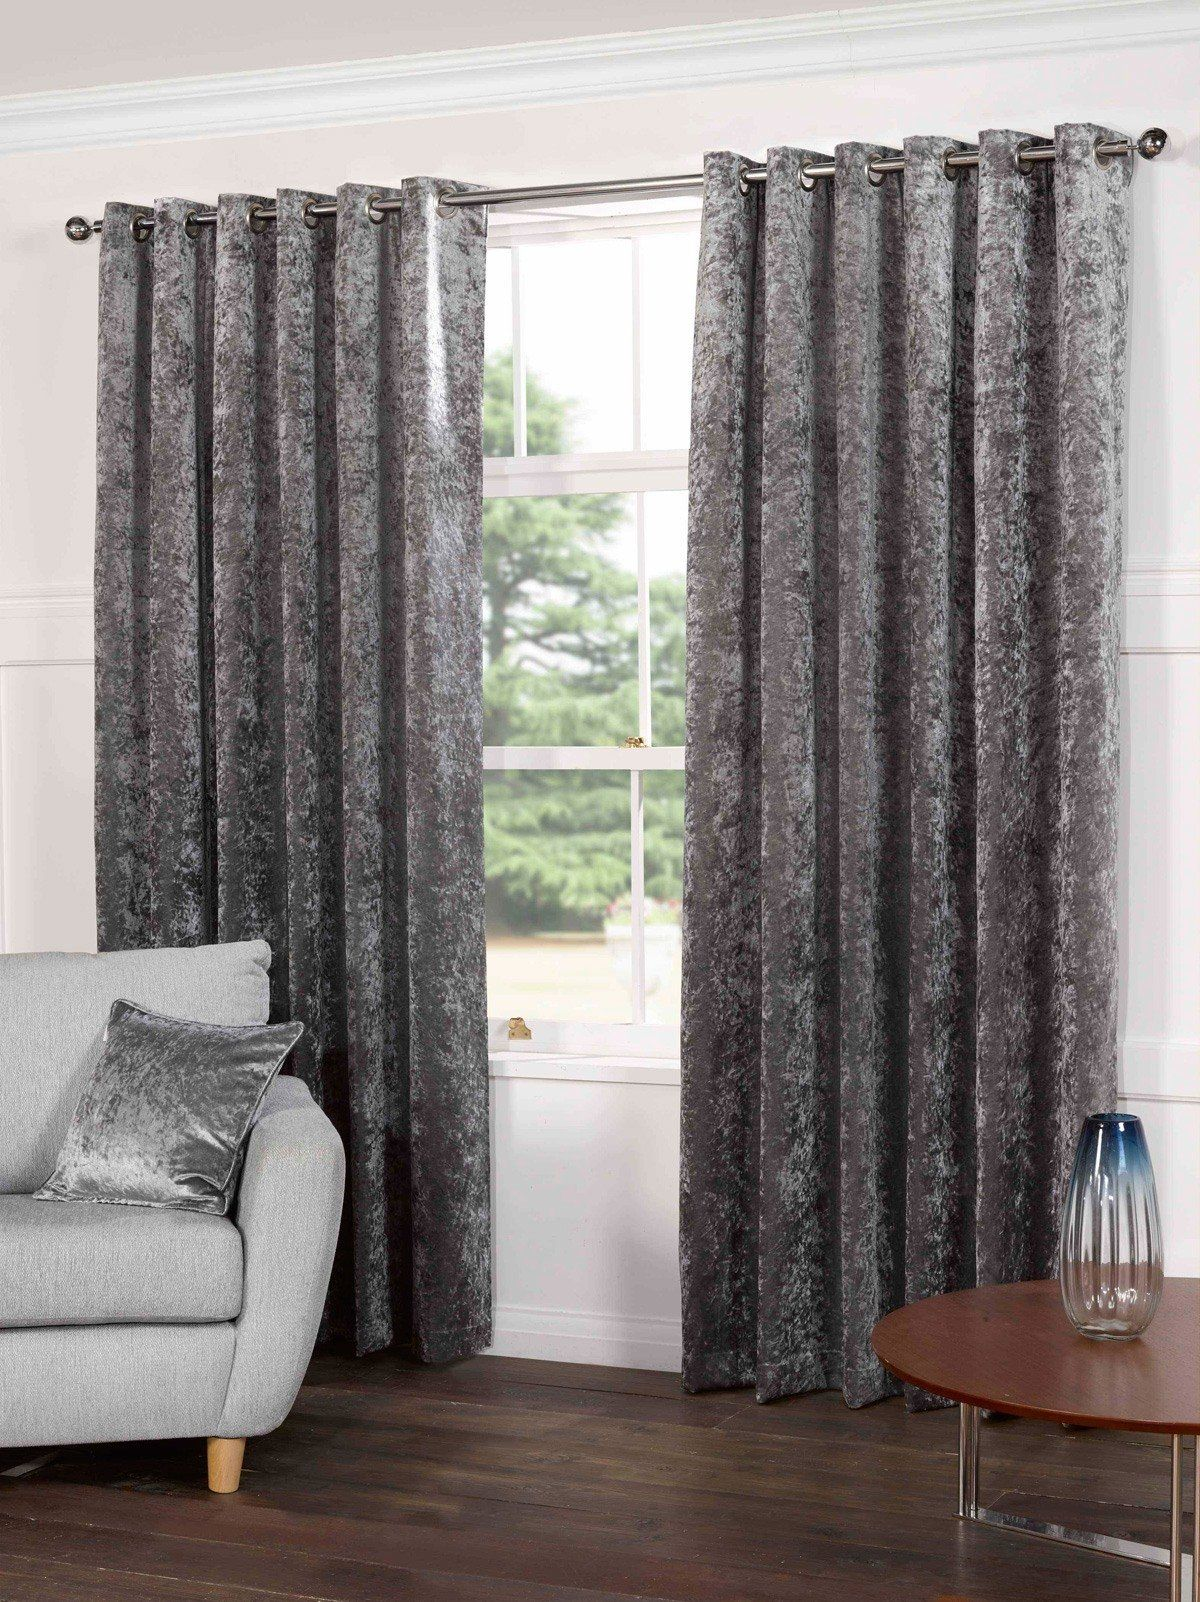 Luxury Crushed Velvet Silver Eyelet Ring or Pencil Pleat Fully Lined Curtains